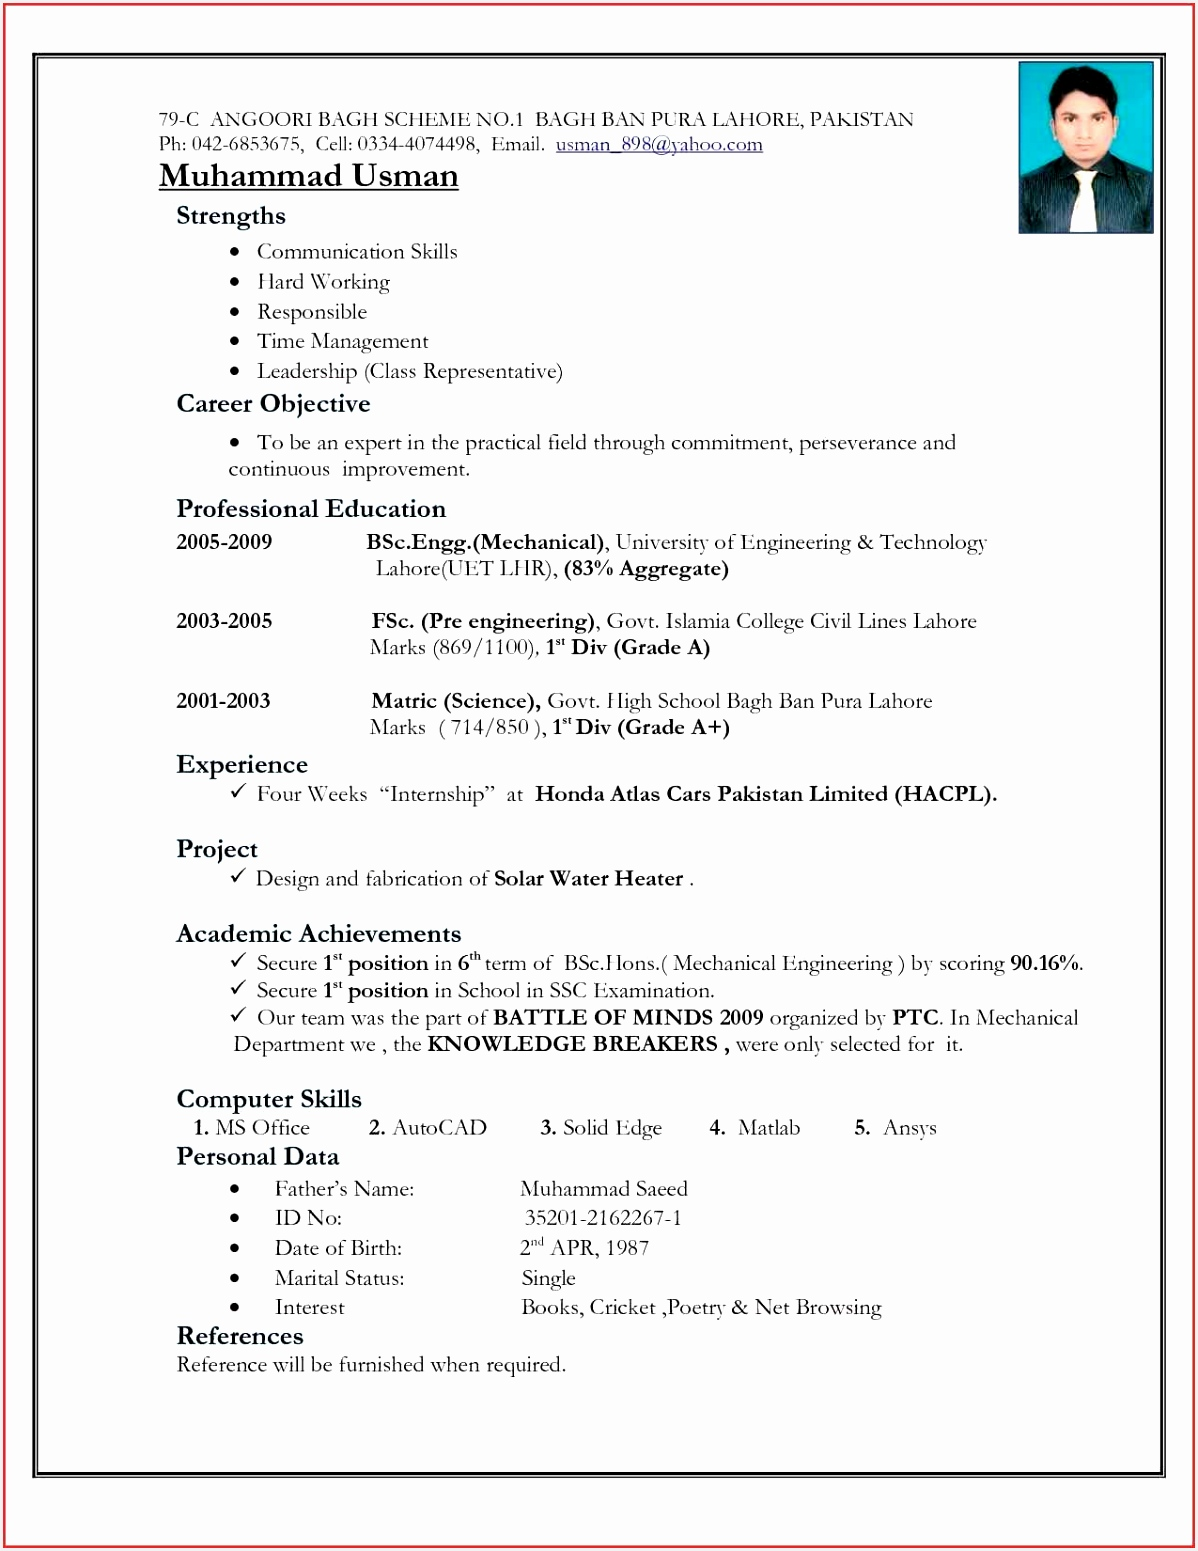 Resumes format for Freshers N8daq Luxury Good Resume formats Best Of Best Resume format for Freshers Free Of Resumes format for Freshers Yshjb Awesome New Rn Resume format Lovely New Nurse Resume Awesome Nurse Resume 0d